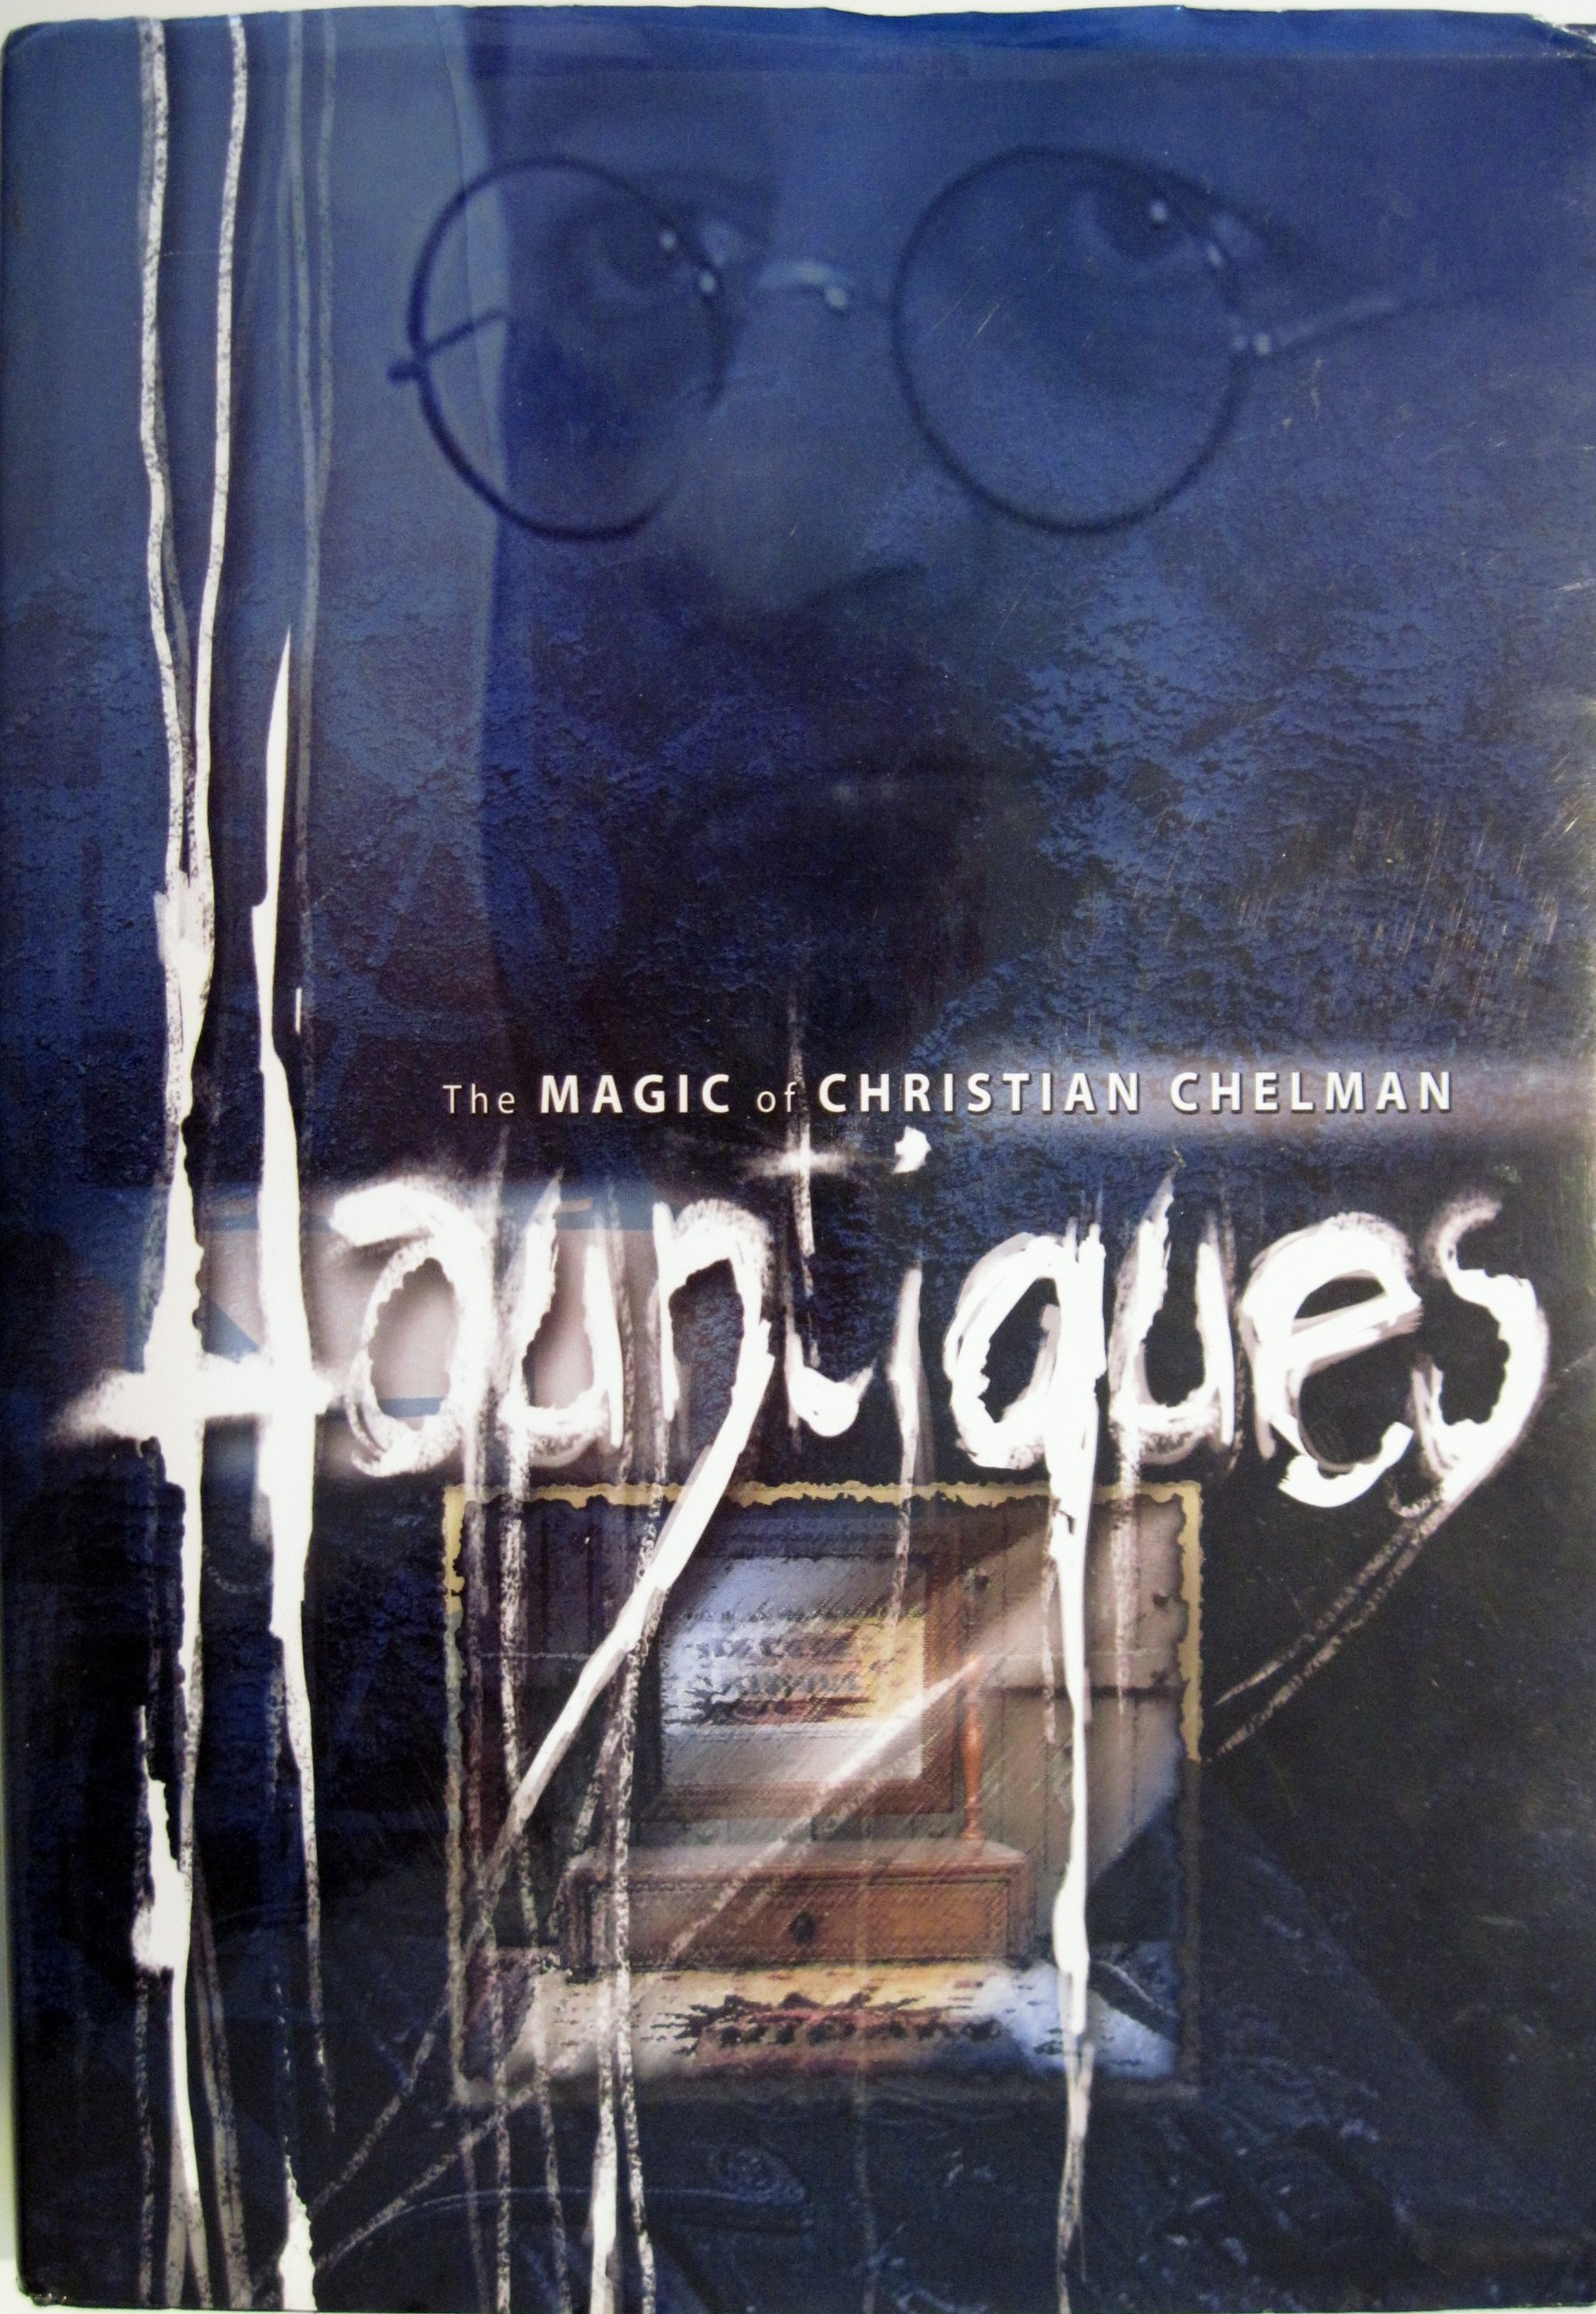 Hauntiques by Christian Chelman (PDF Download)